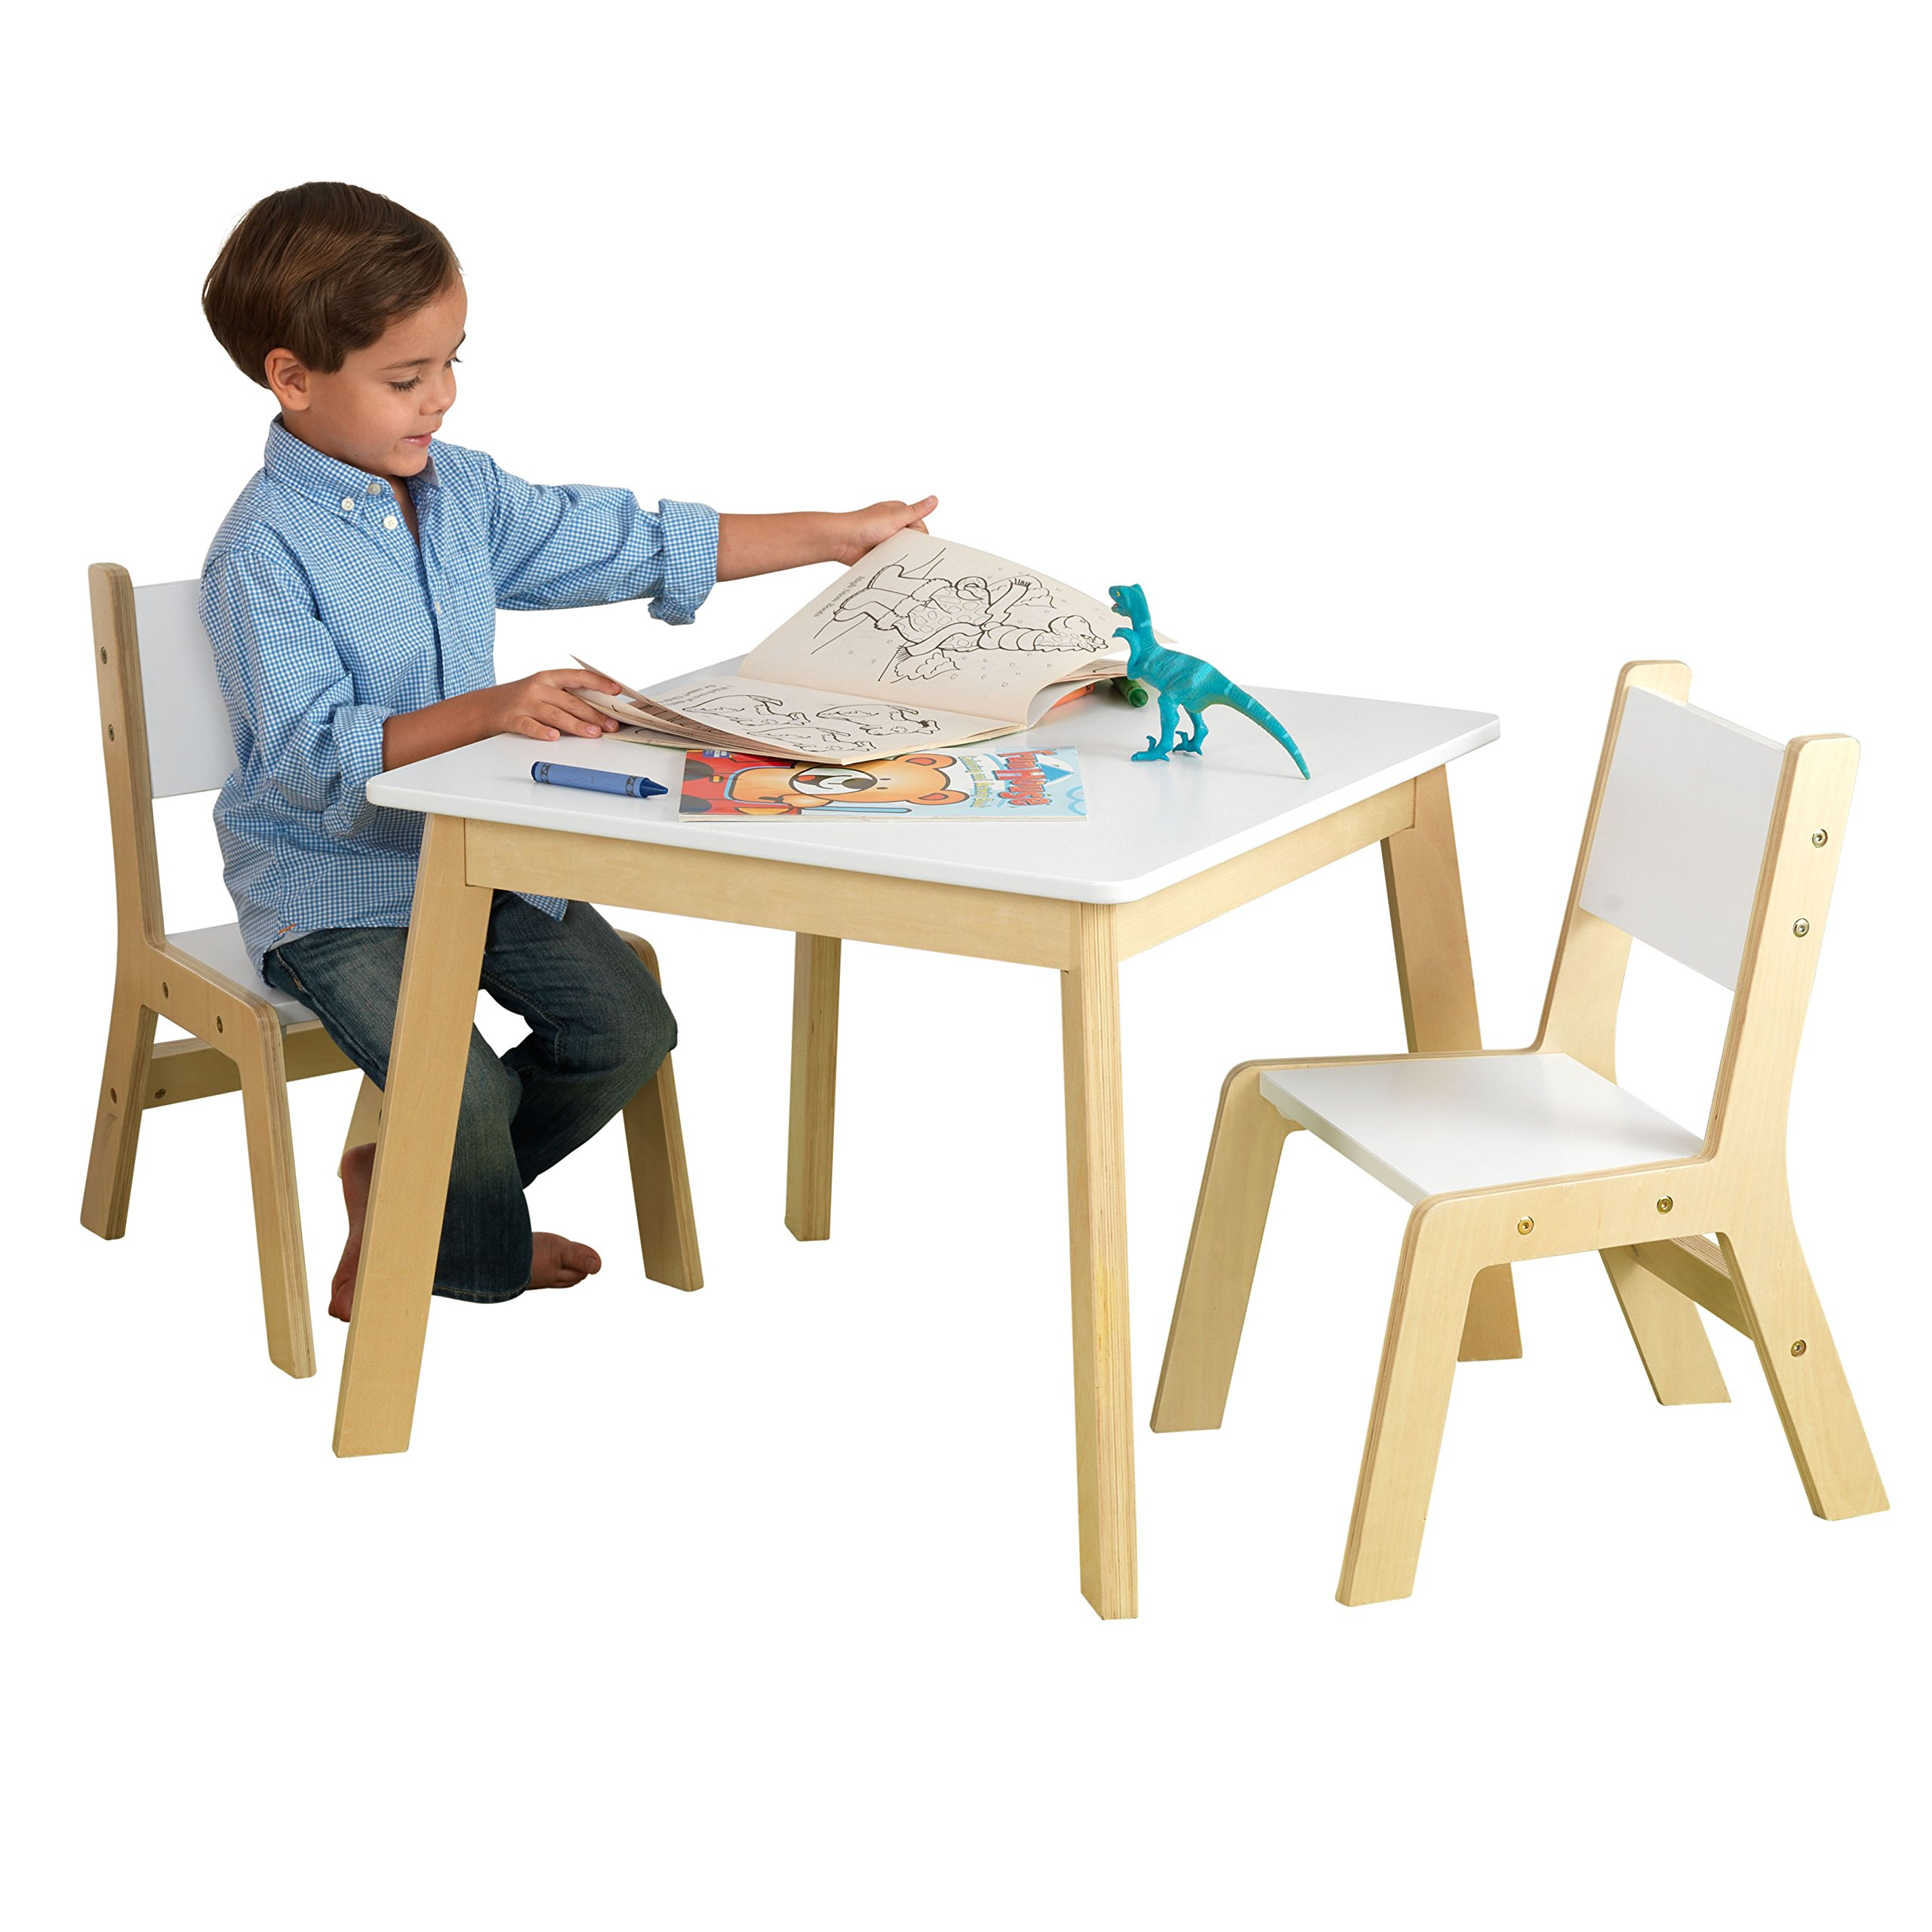 KidKraft Modern Table and 2 Chair Set by KidKraft